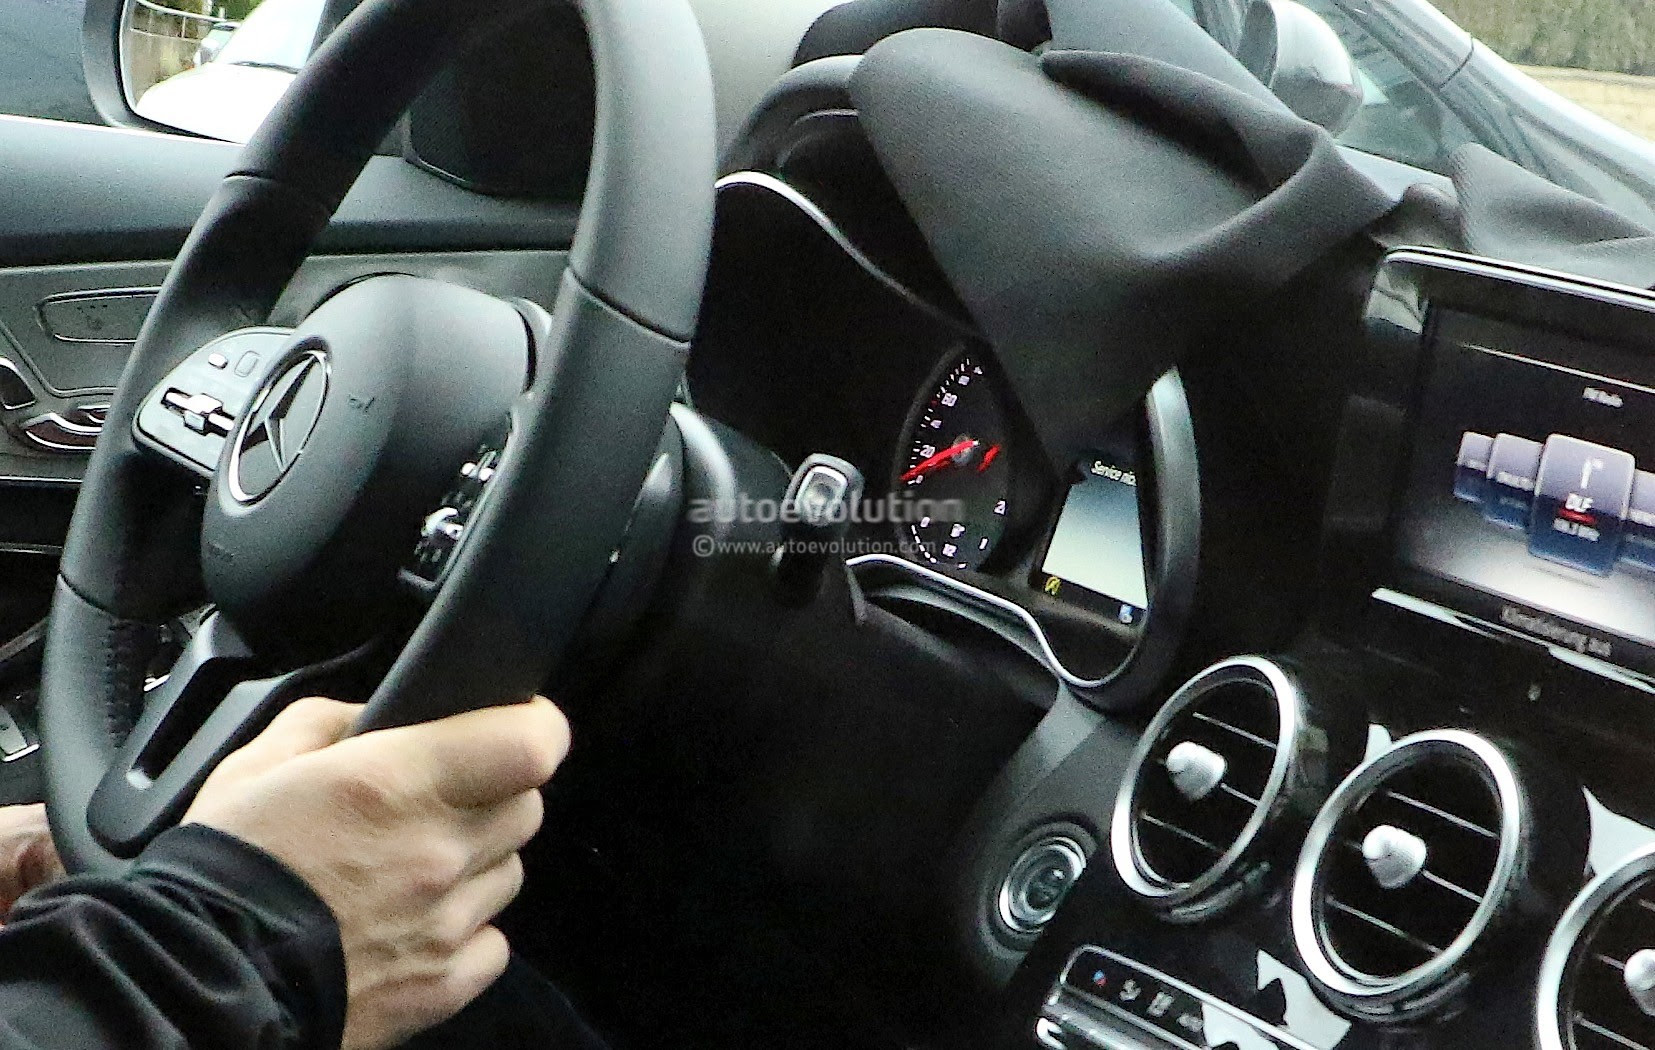 2018 Mercedes-Benz C-Class Facelift Shows Interior For The ...